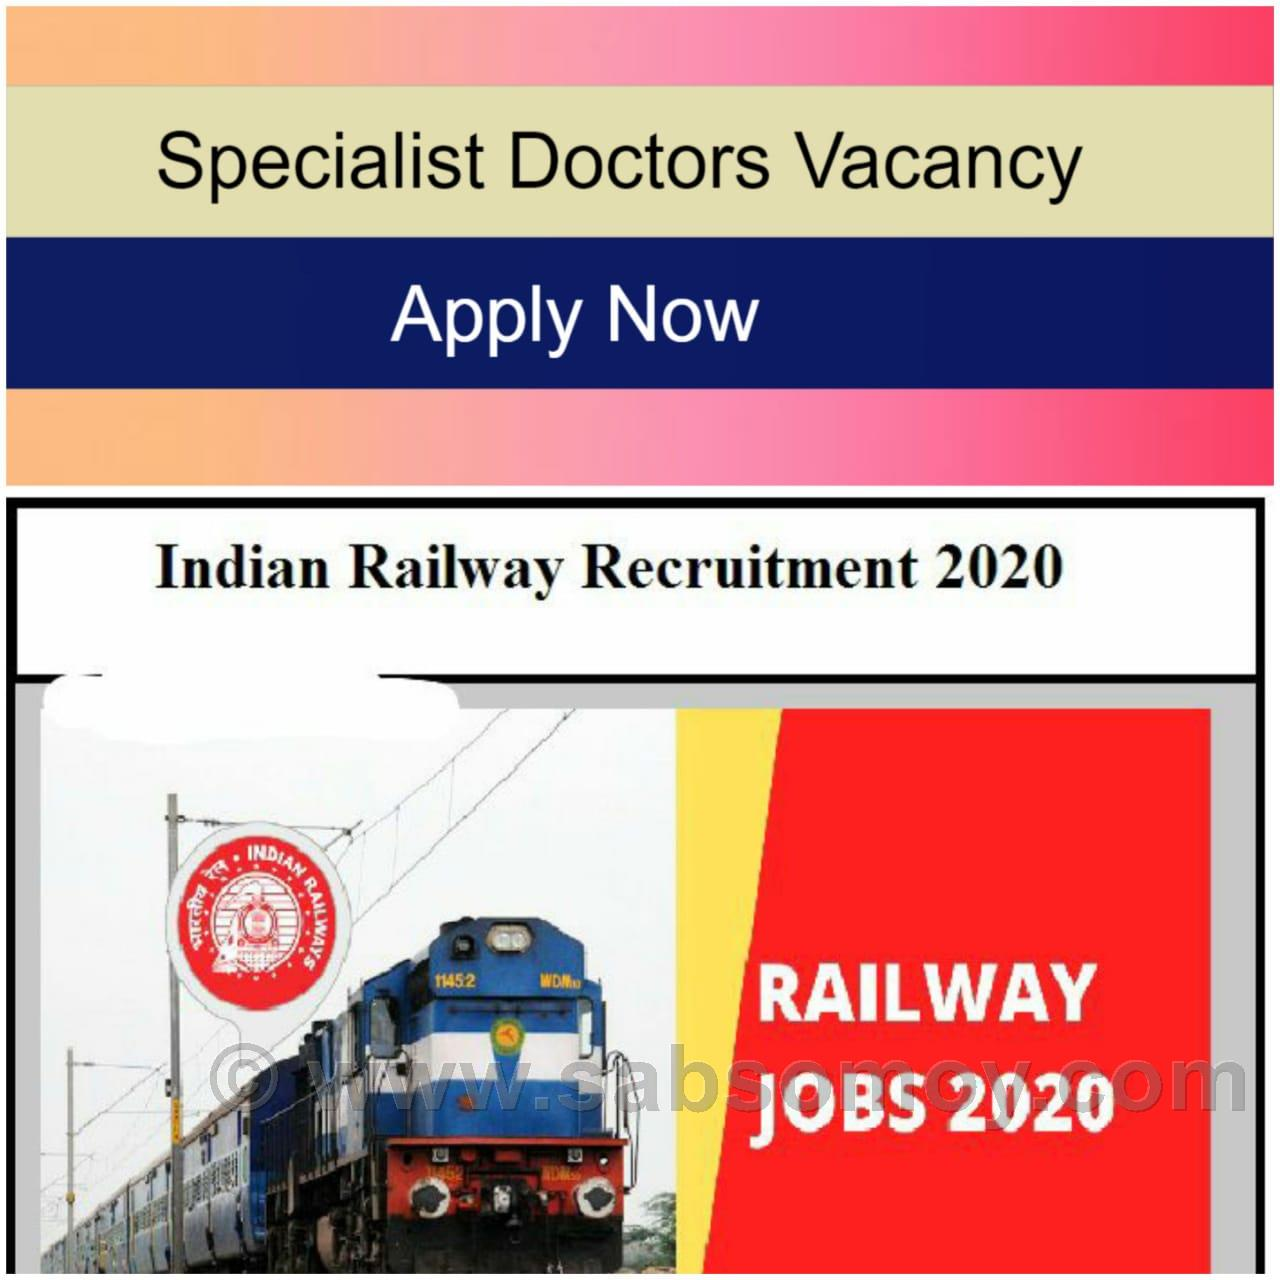 East Central Railway Recruitment 2020 – General Duty & Specialist Doctors Posts